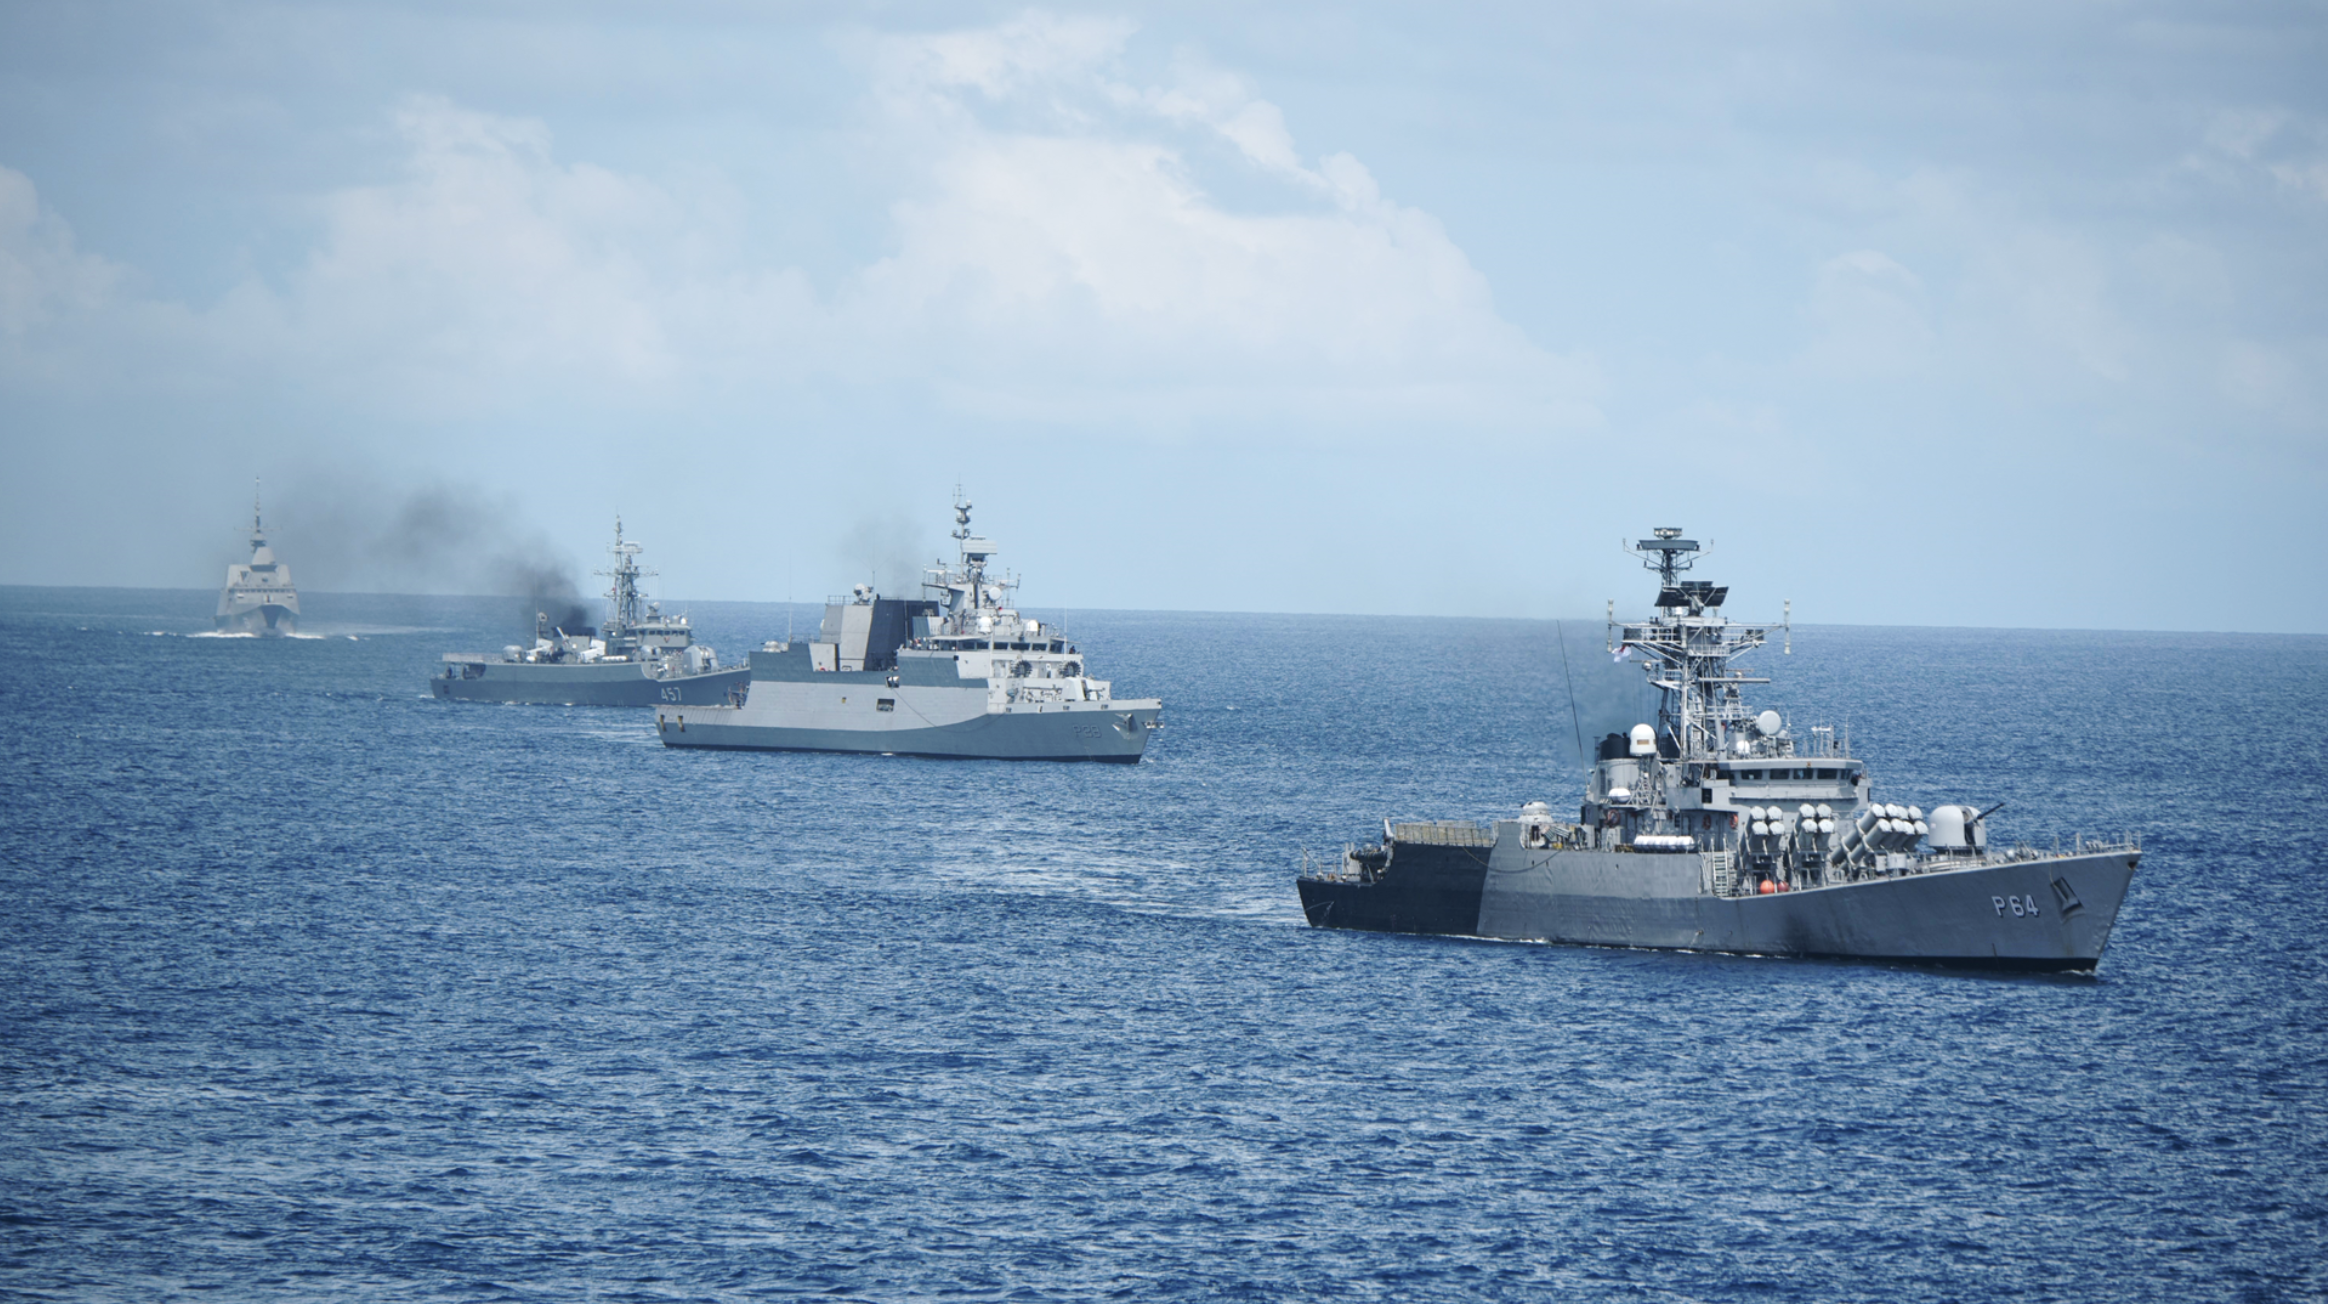 The Republic of Singapore Navy, Indian Navy and Royal Thai Navy conducting manoeuvring drills during SITMEX 2020. Photo courtesy: Mindef